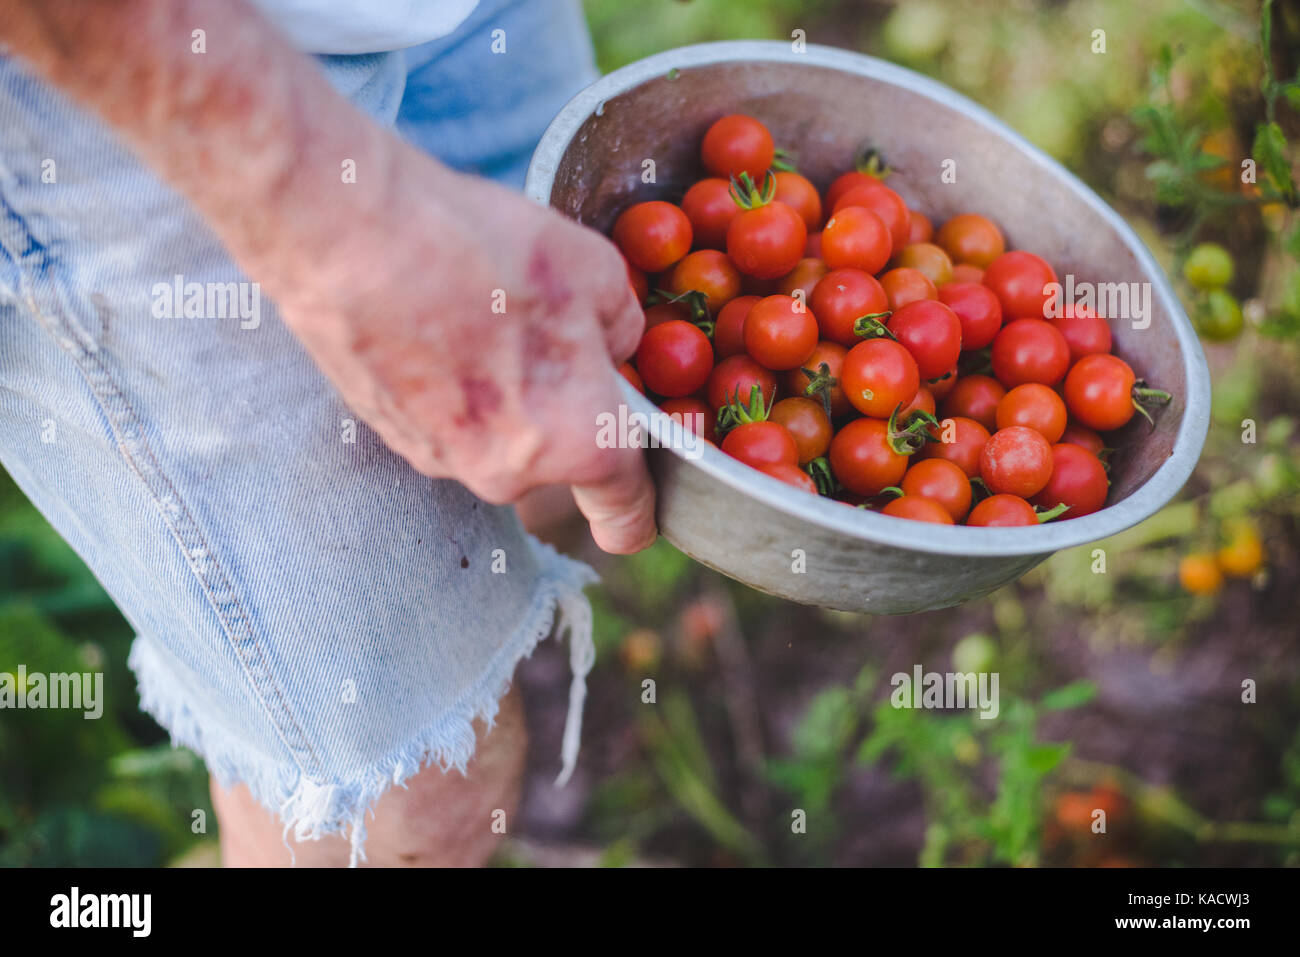 Man's hands holding a colander full of fresh, red cherry tomatoes. - Stock Image